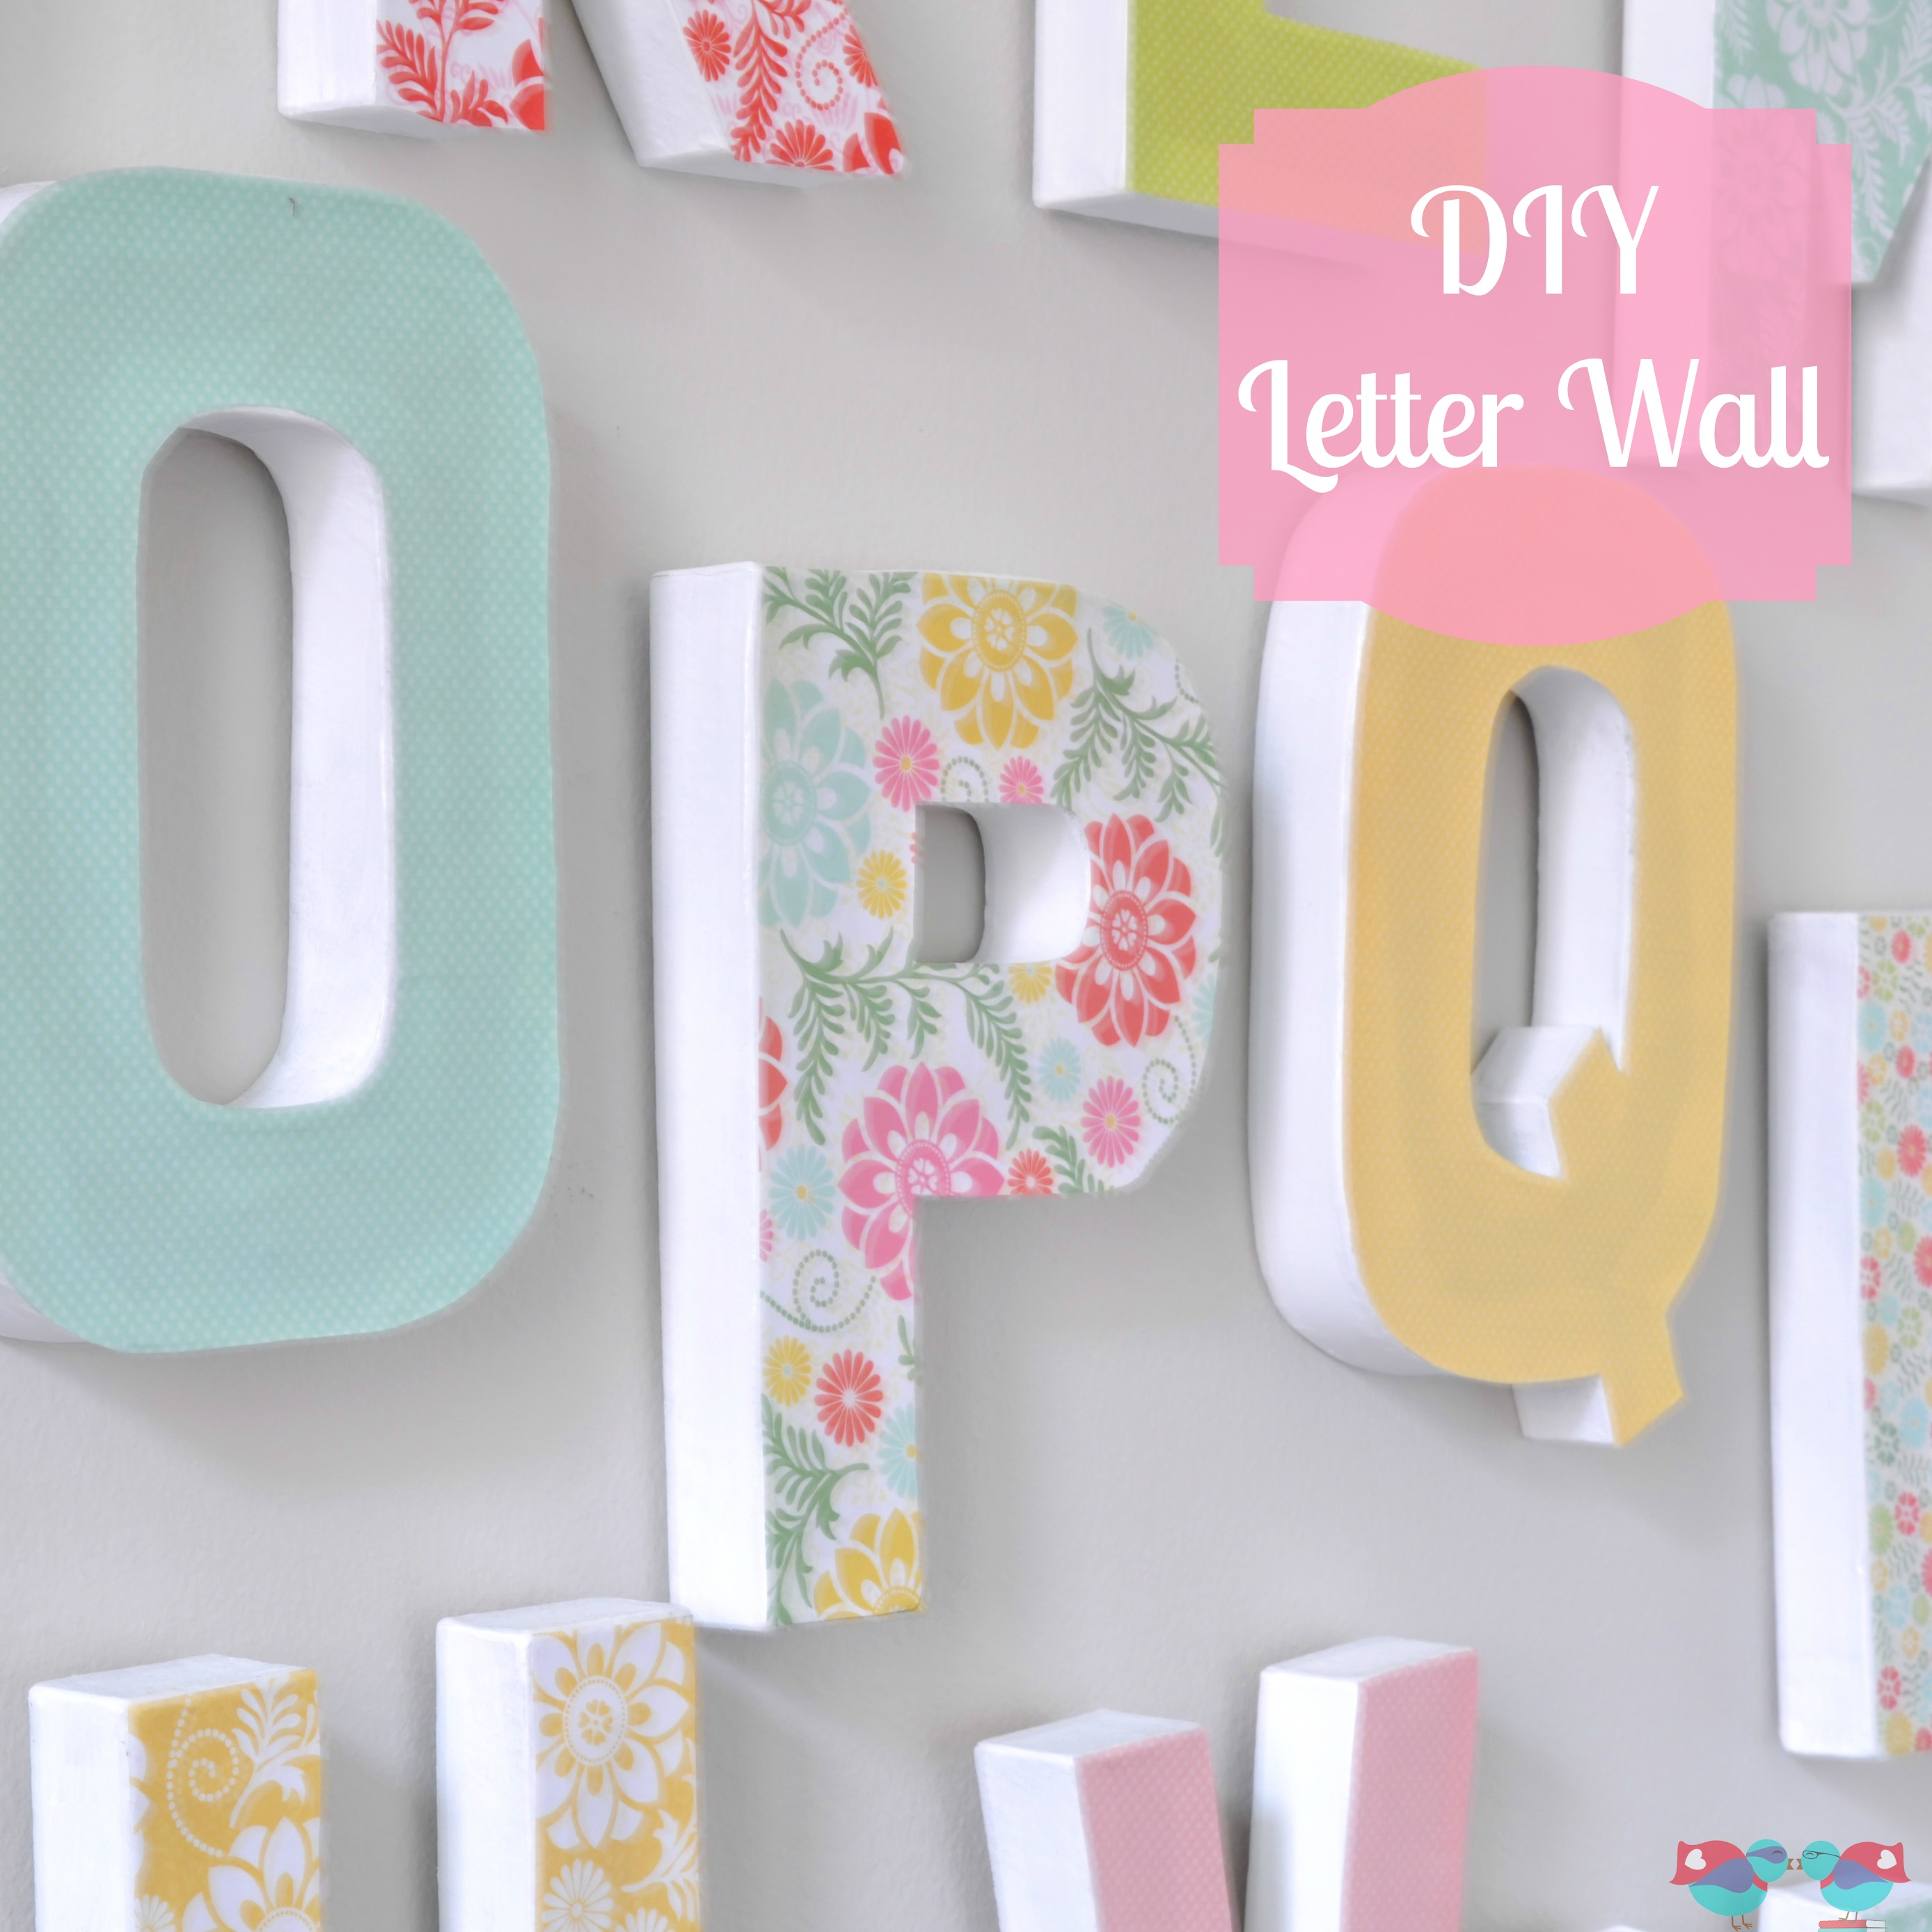 Decorating Paper Crafts For Home Decoration Interior Room: DIY LETTER WALL DECOR